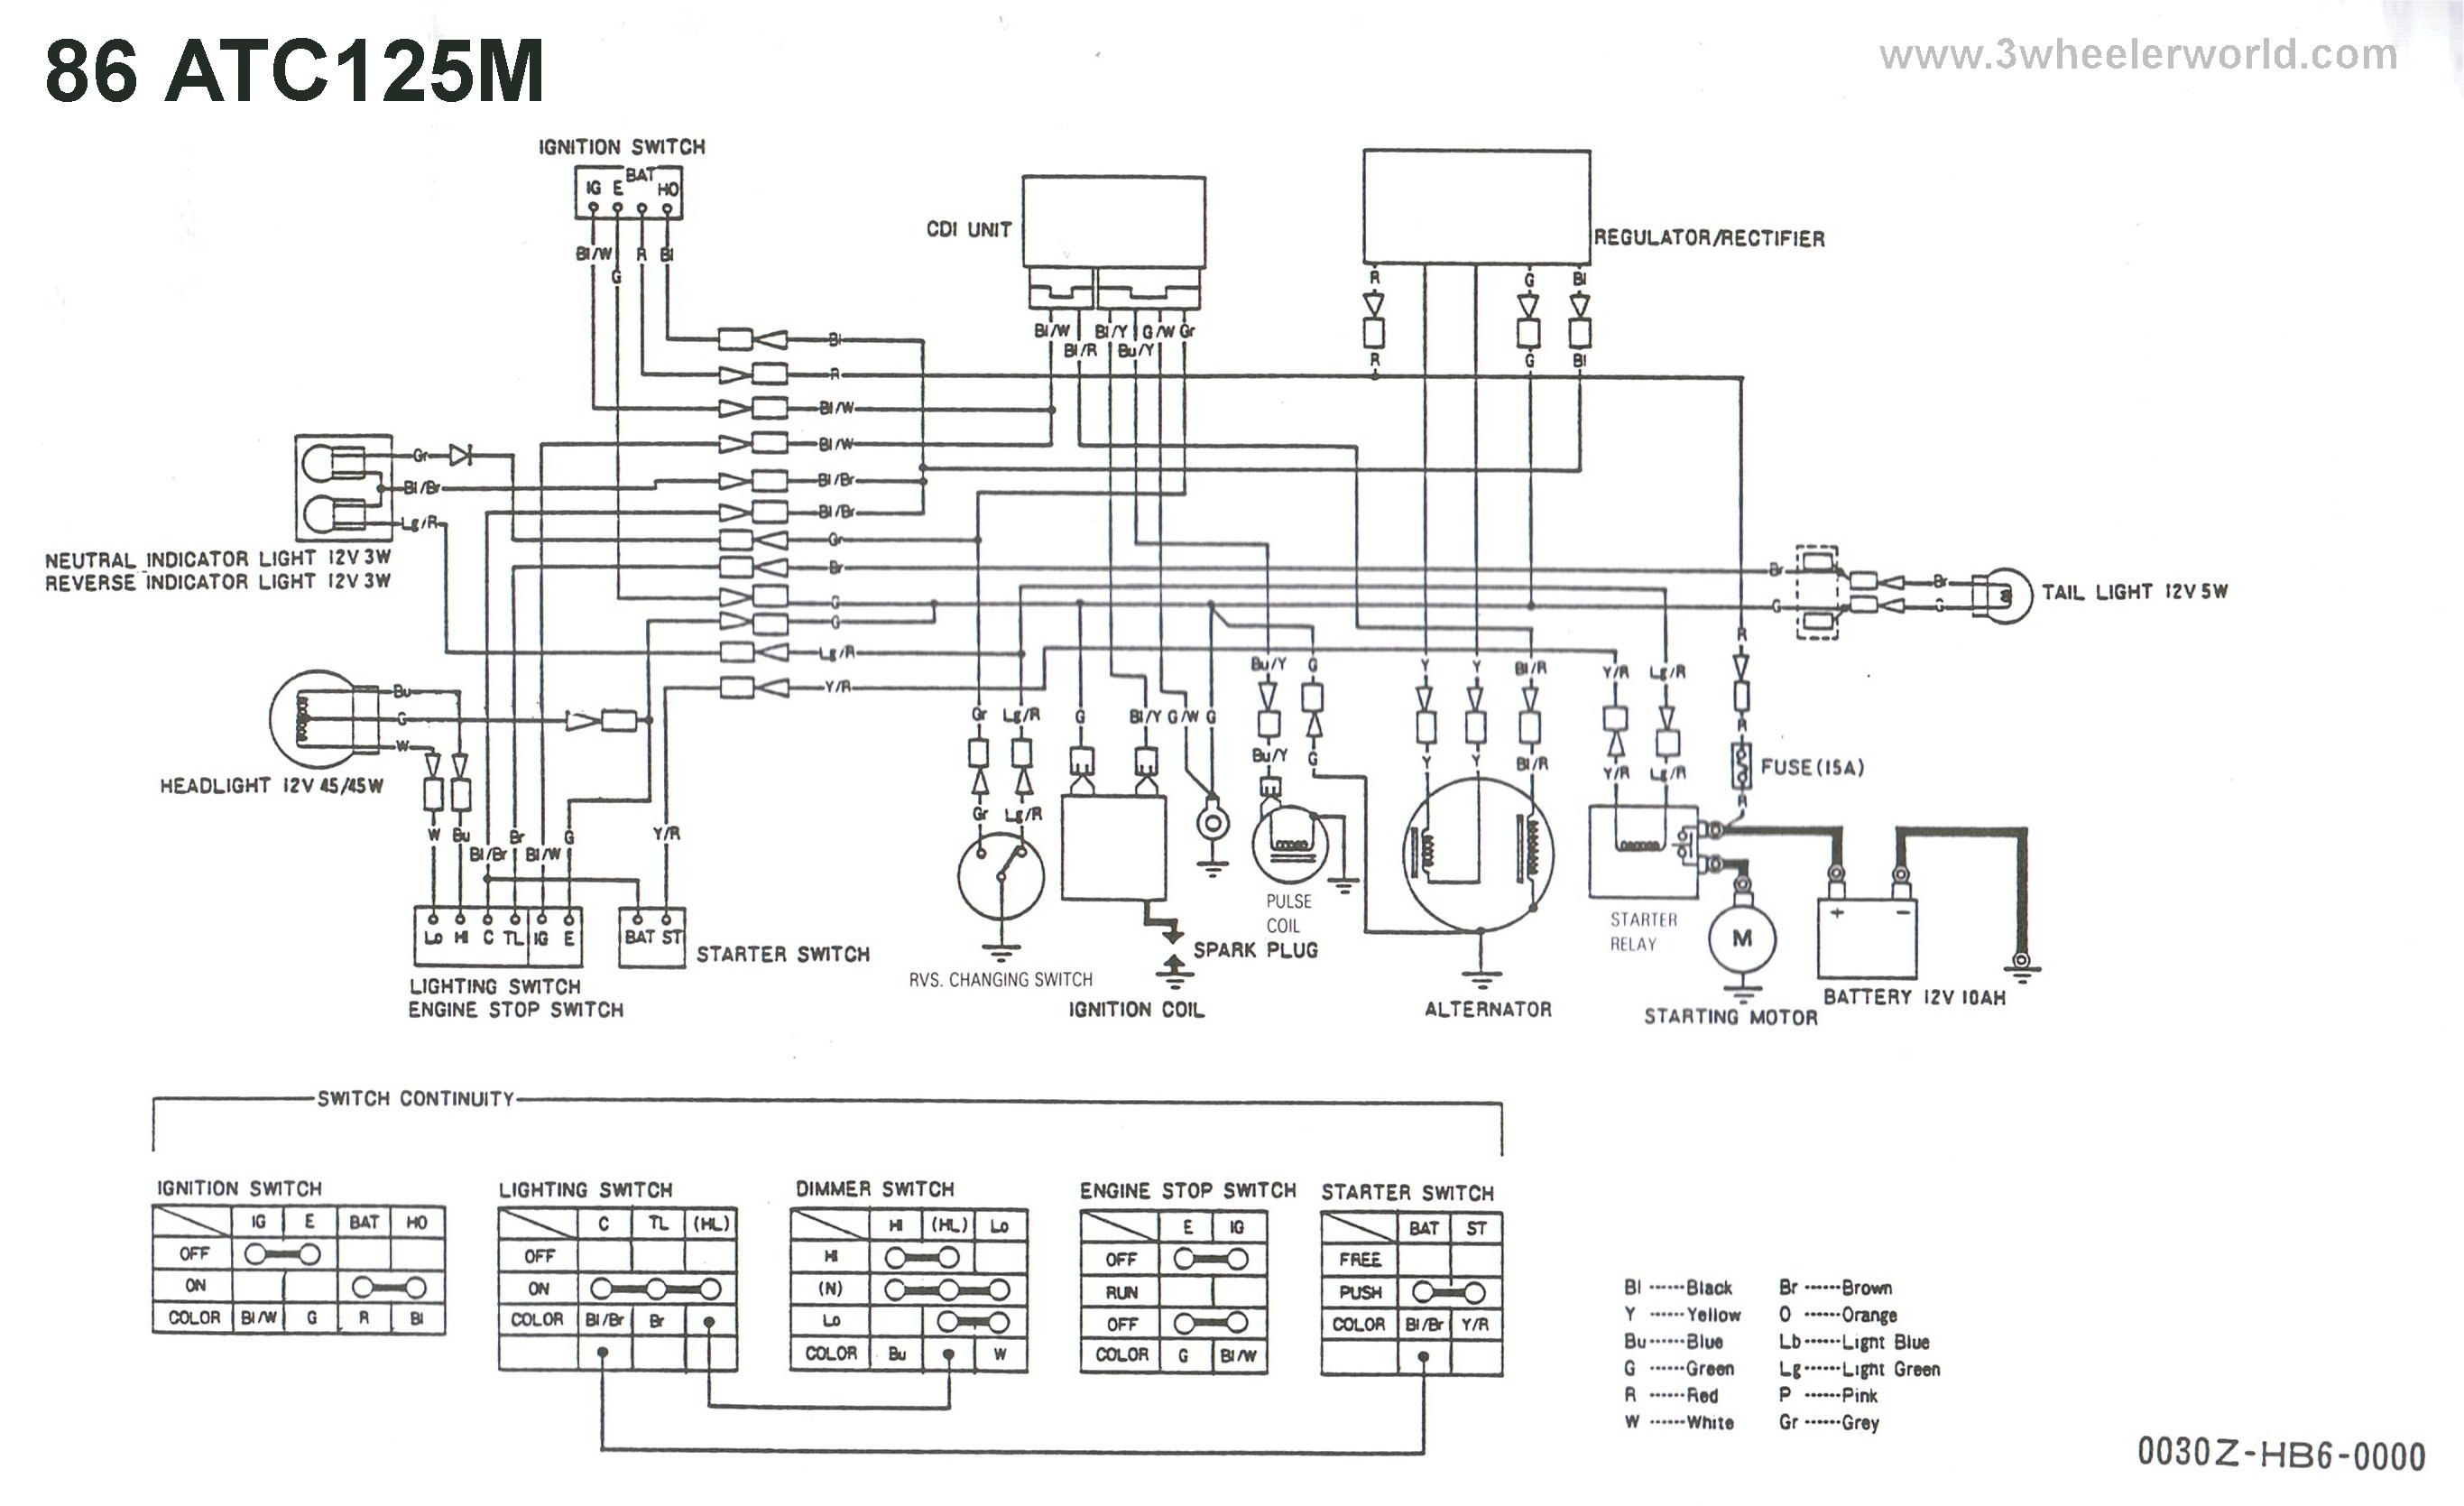 Trx350 Wiring Diagram 1987, Trx350, Free Engine Image For